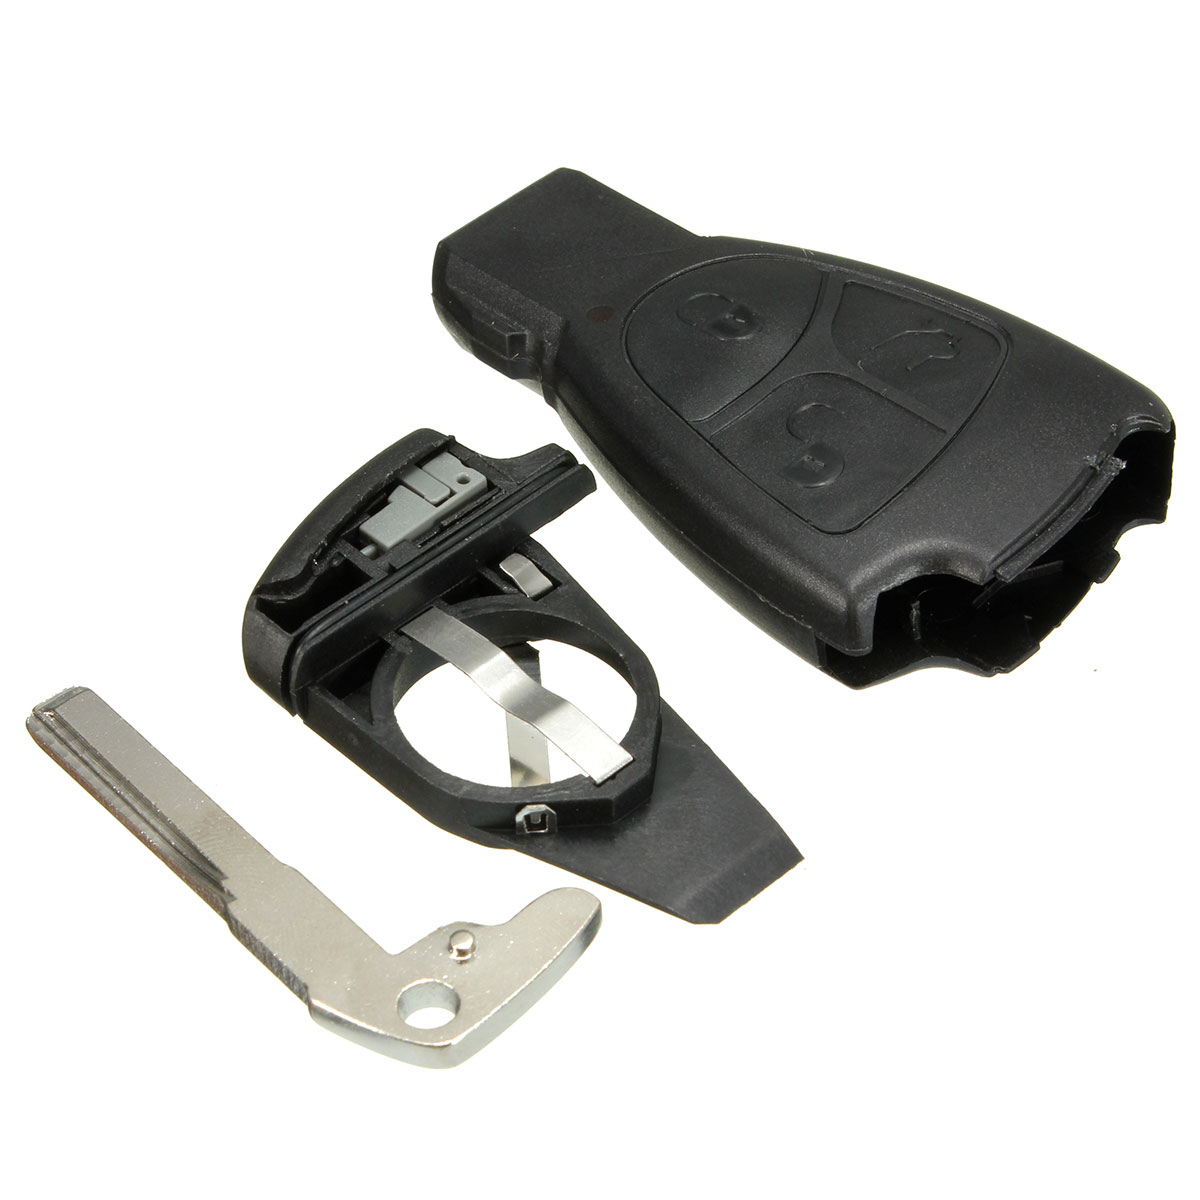 3 button key fob case shell remote for mercedes benz r c e for Mercedes benz key fob battery size